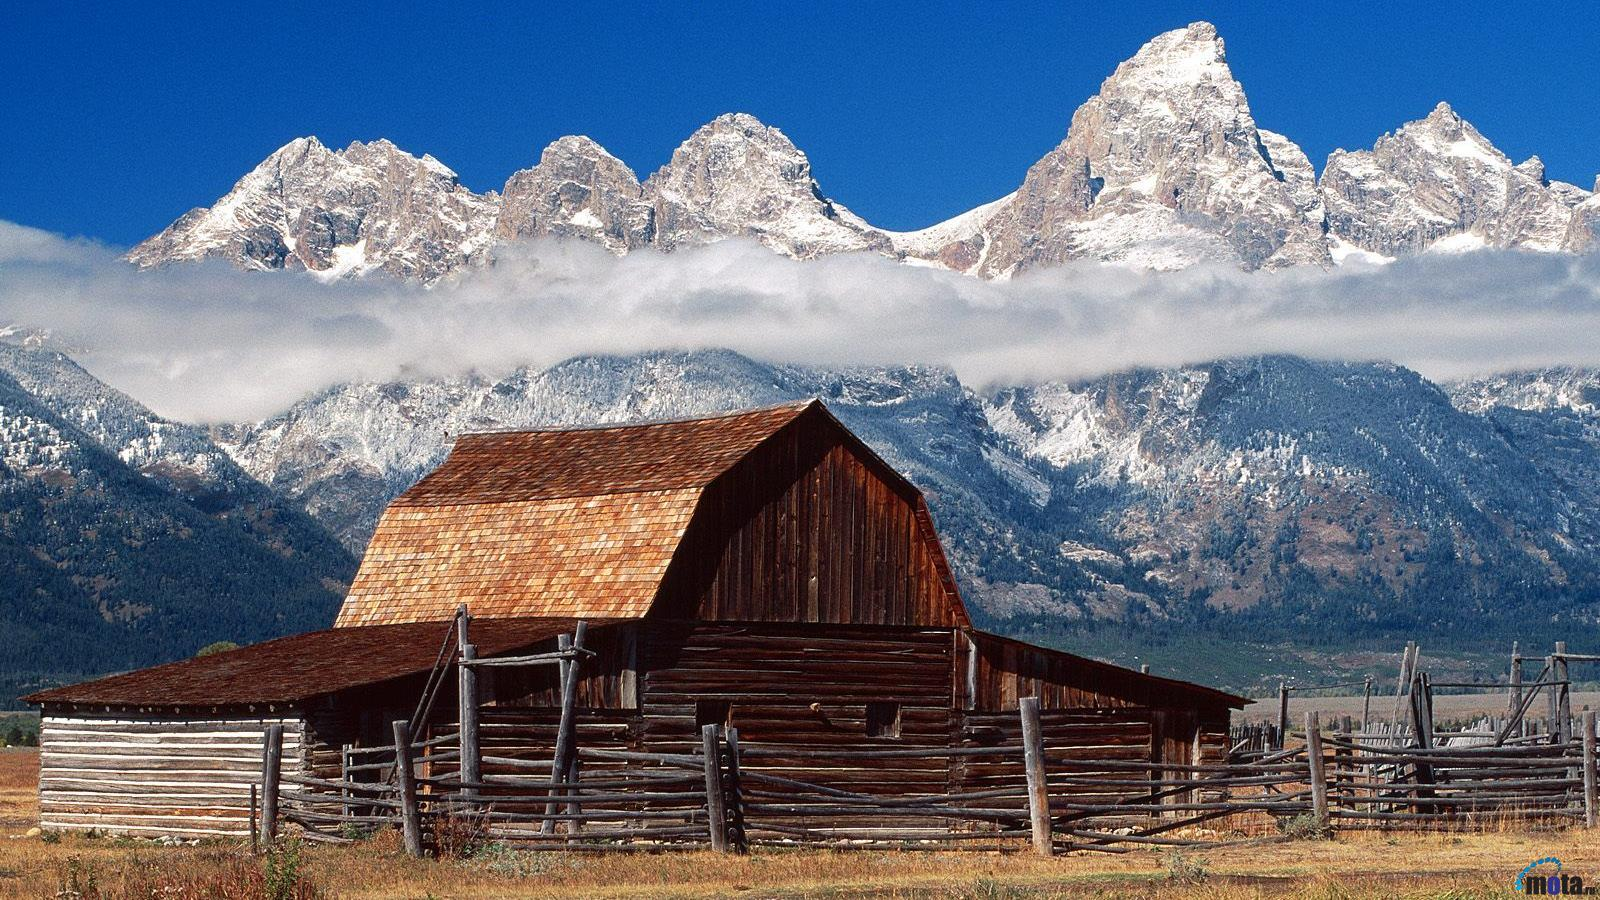 Jackson Hole Wyoming 1600 x 900 widescreen Desktop wallpapers and 1600x900